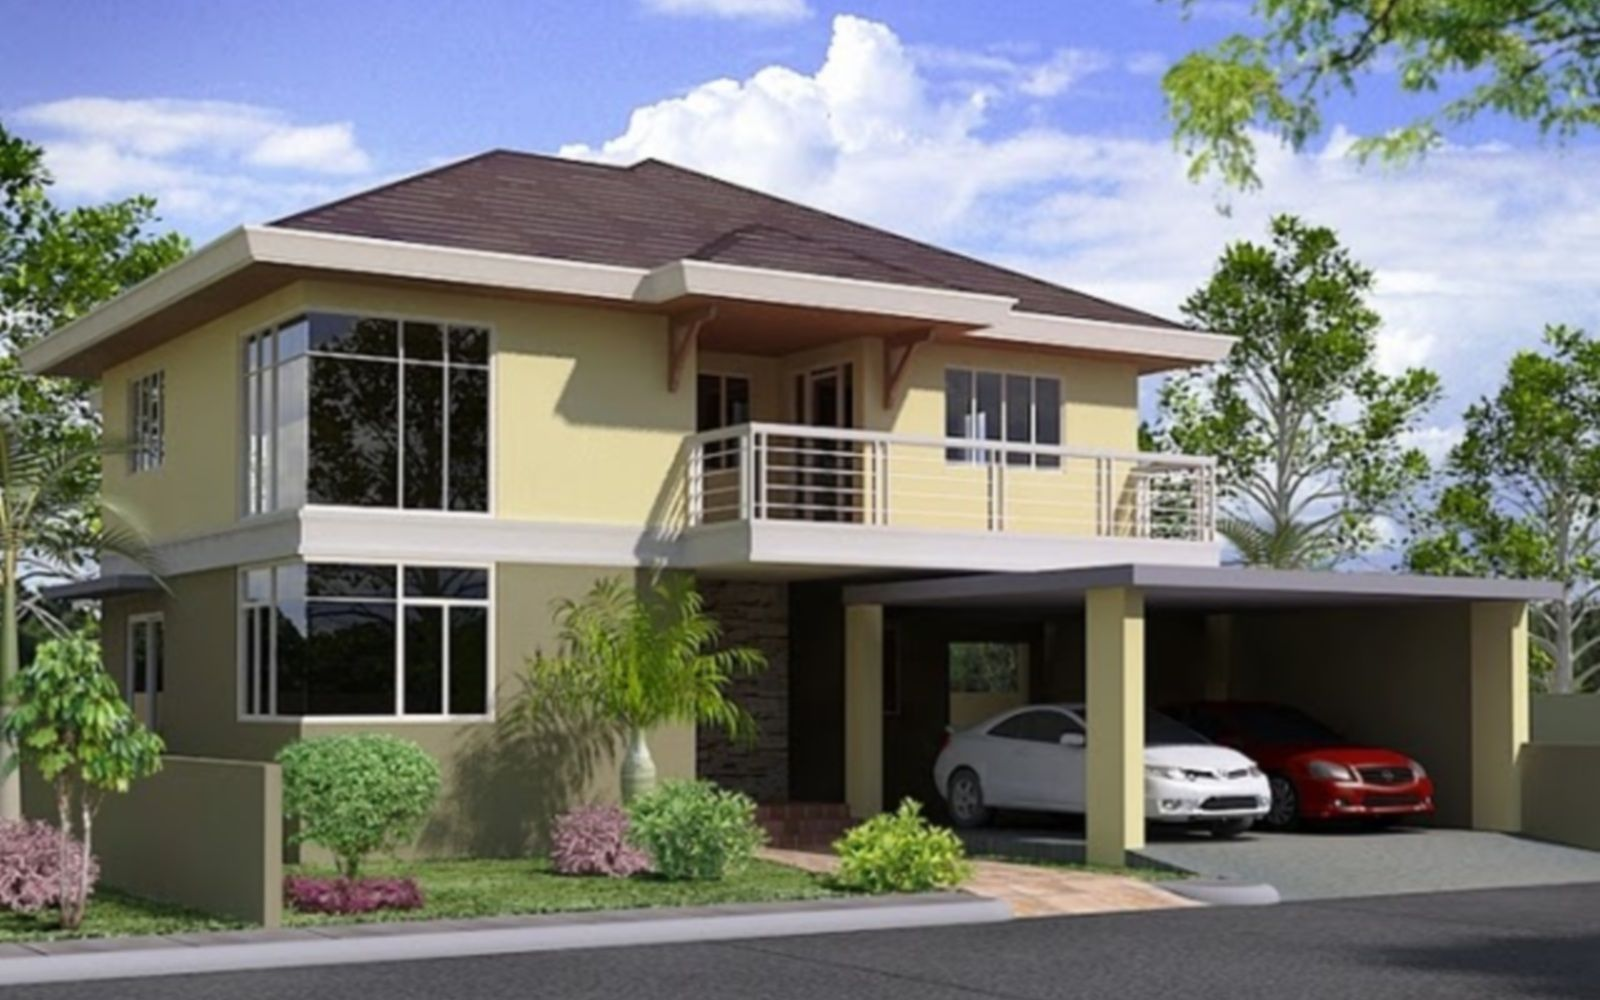 2 storey house design philippines modern house plan 3